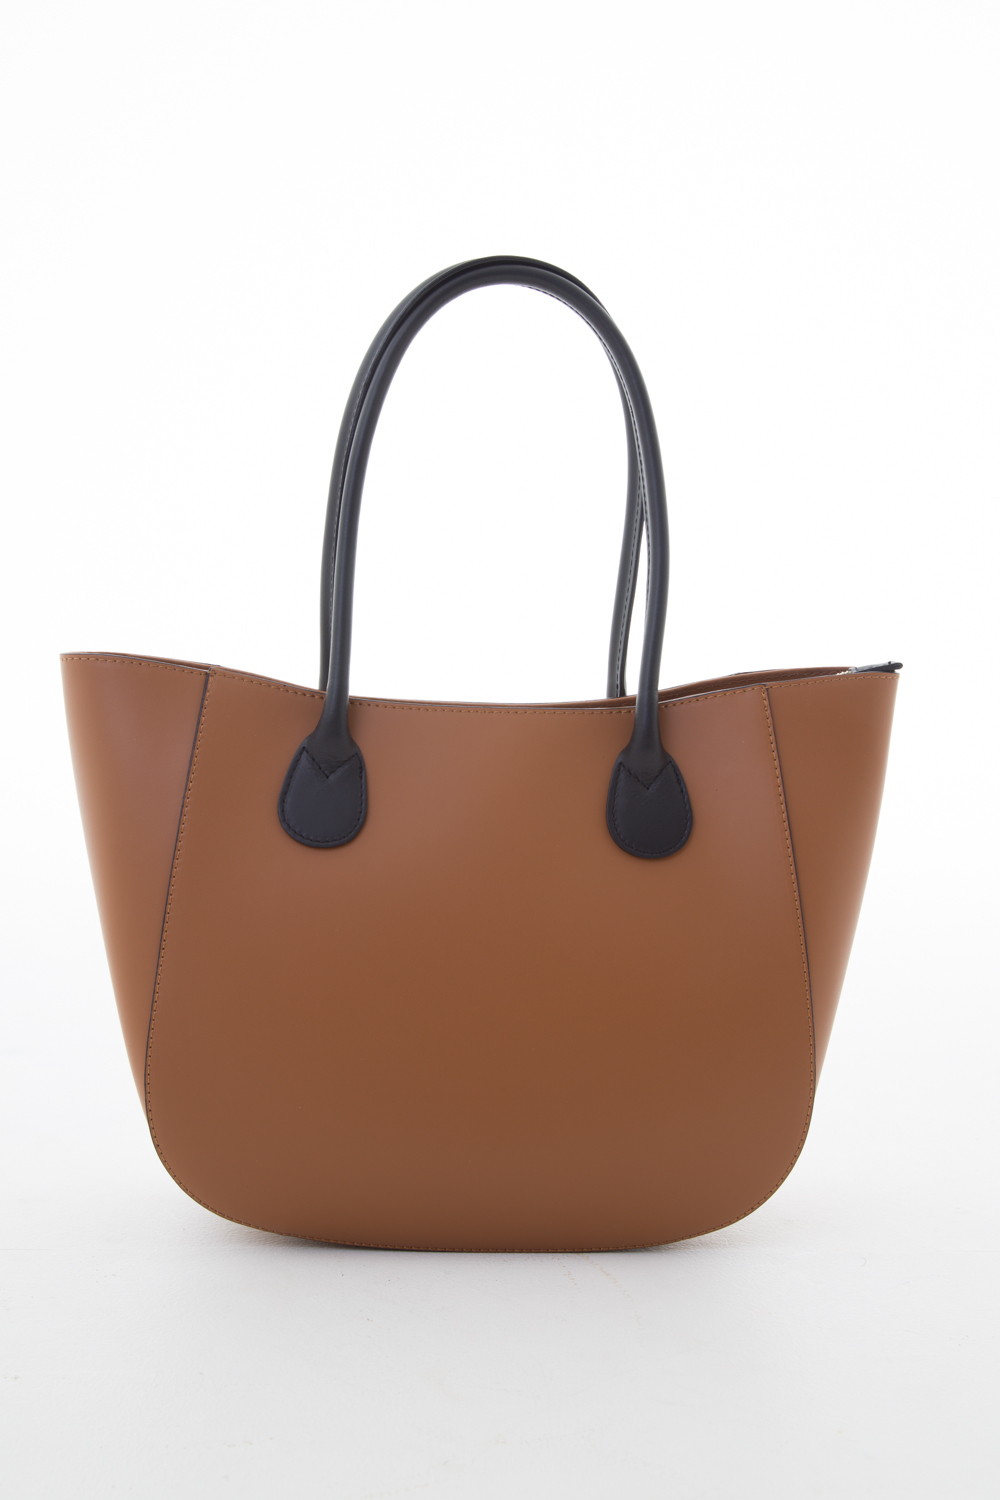 Newbury Shoulder Bag in Tan